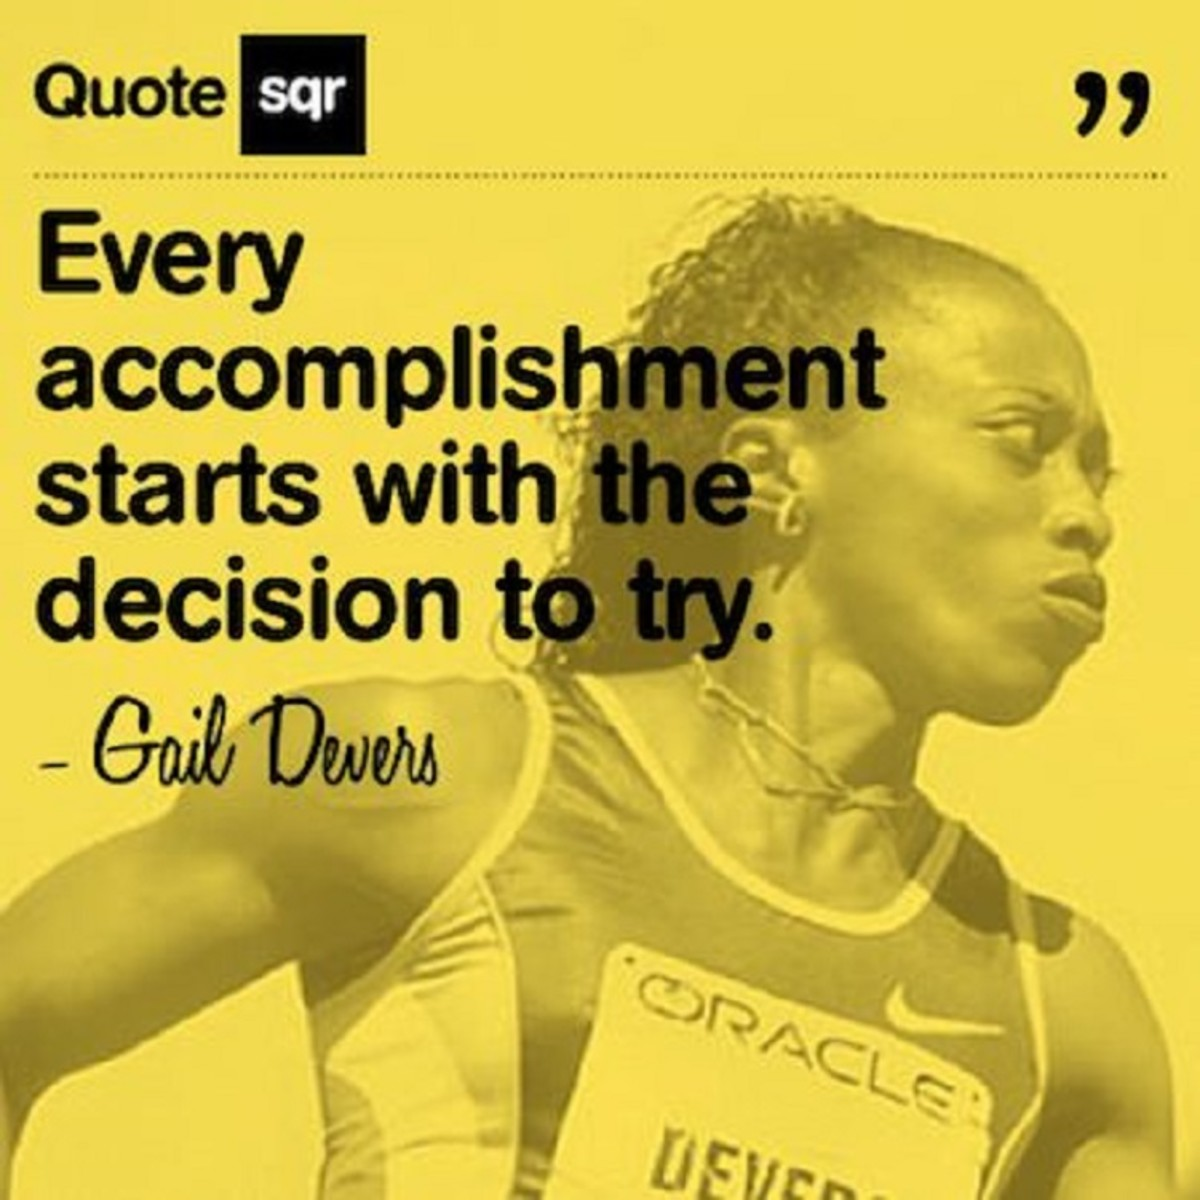 Every Accomplishment Starts With the Decision to Try & the Refusal to Quit